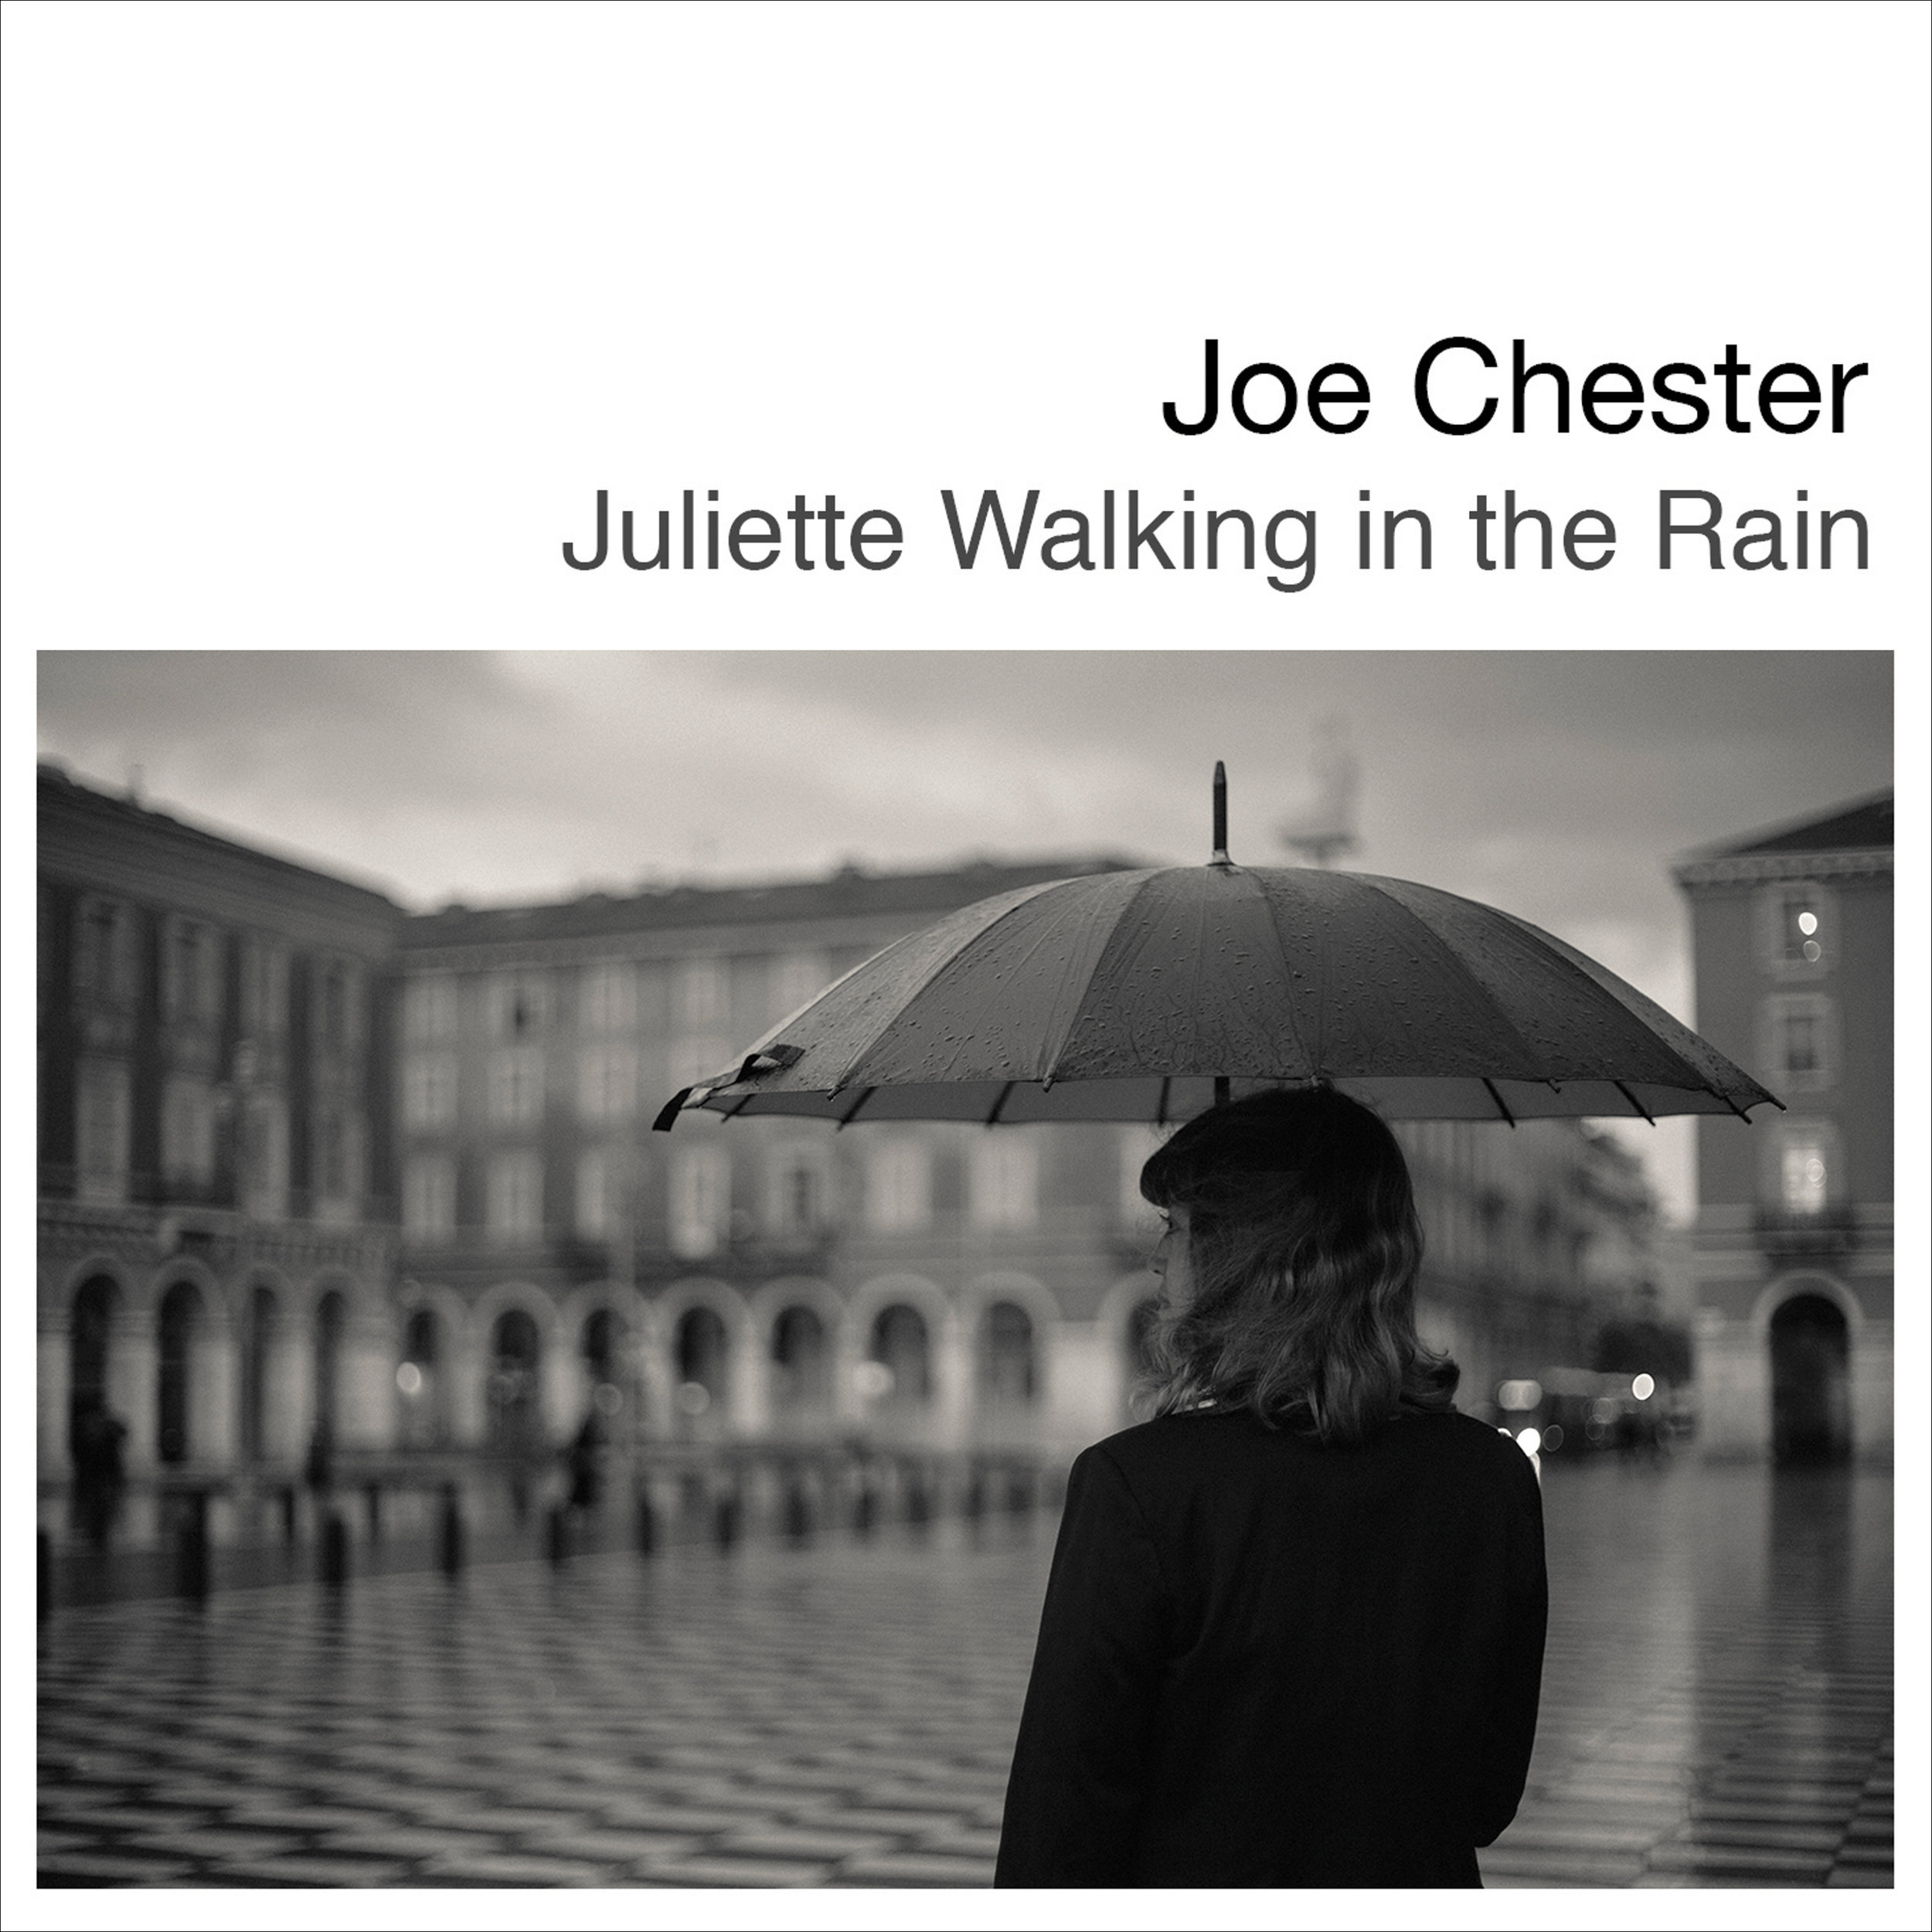 BOHCDS003 - JOE CHESTER - JULIETTE WALKING IN THE RAIN.jpg